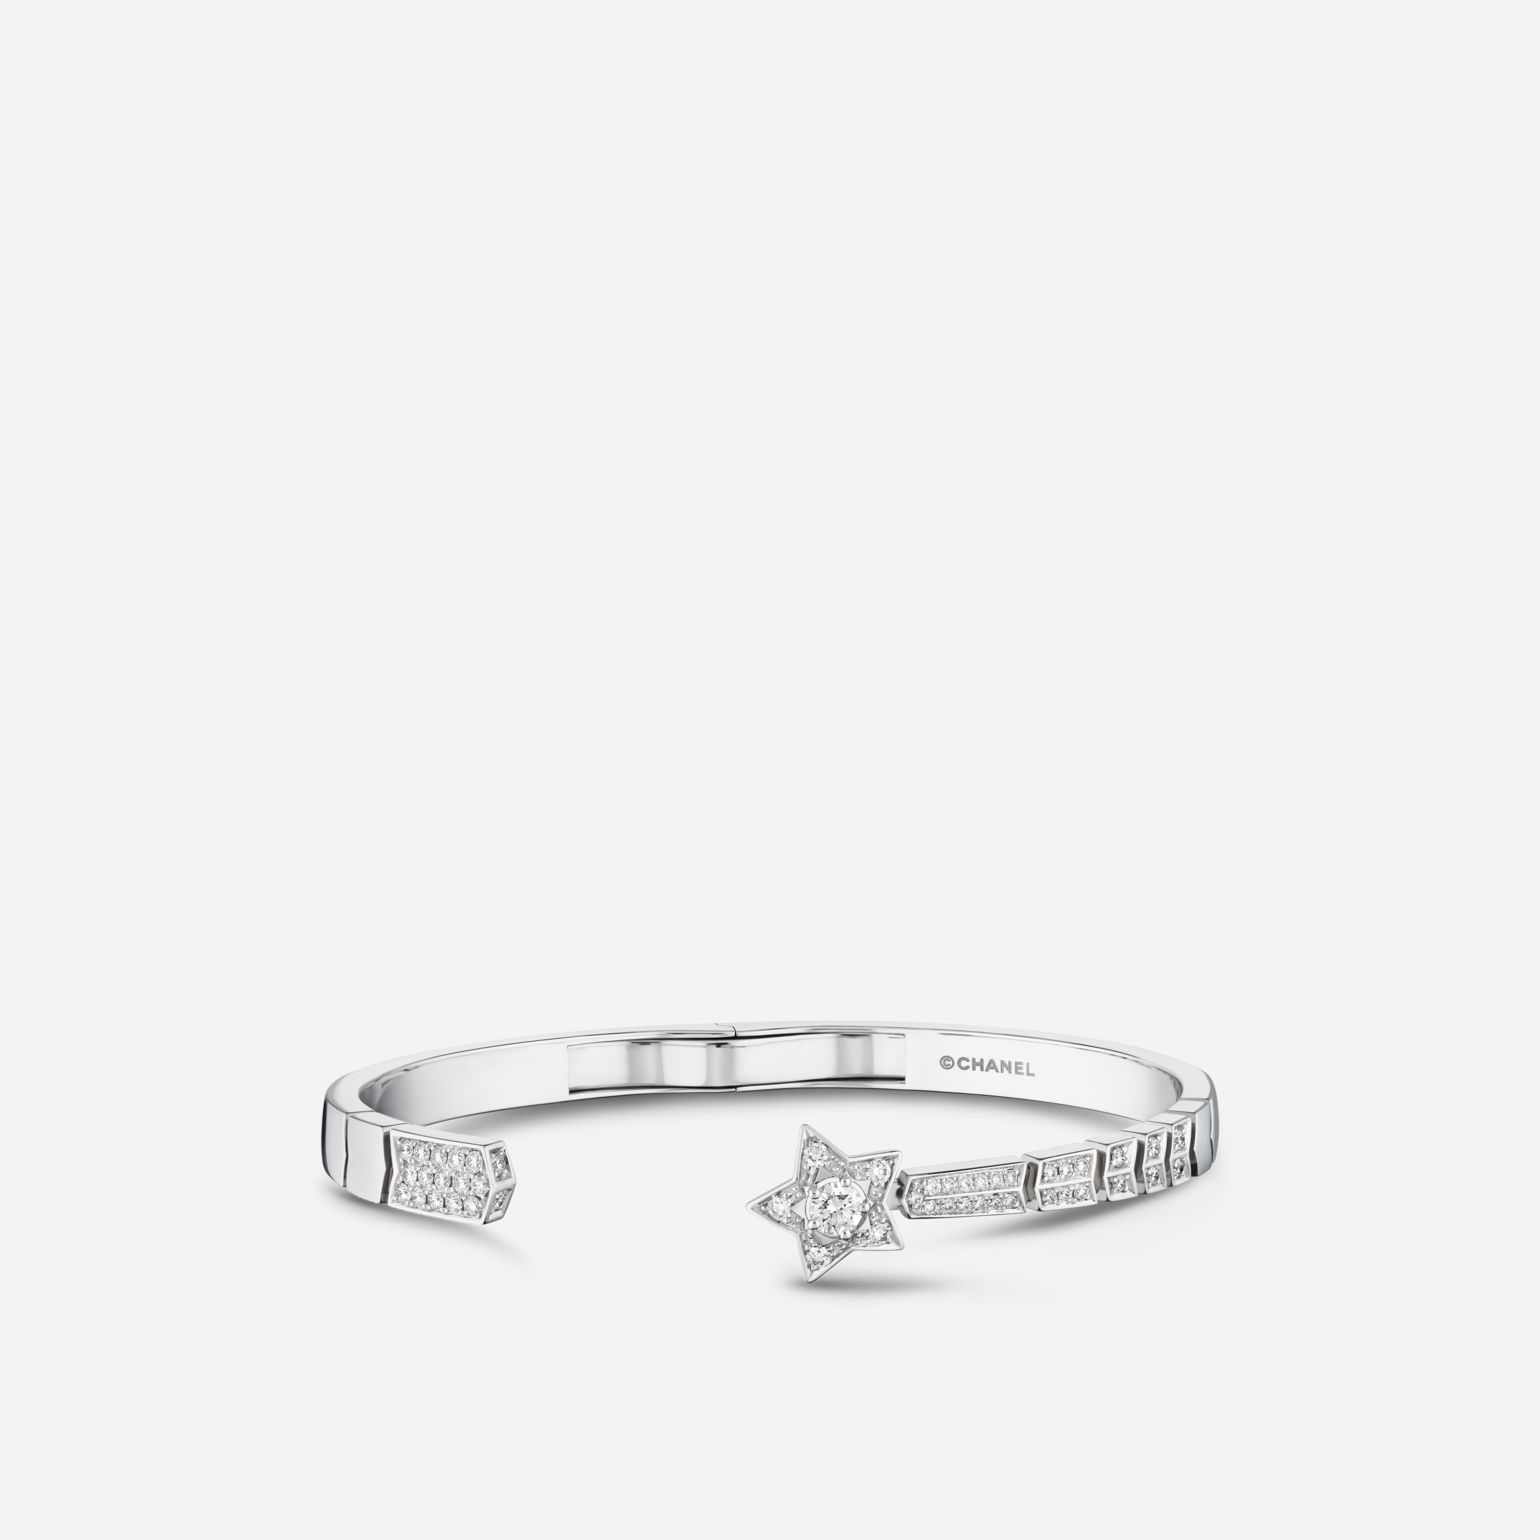 Comète bracelet Shooting star bracelet in 18K white gold and diamonds with one central diamond